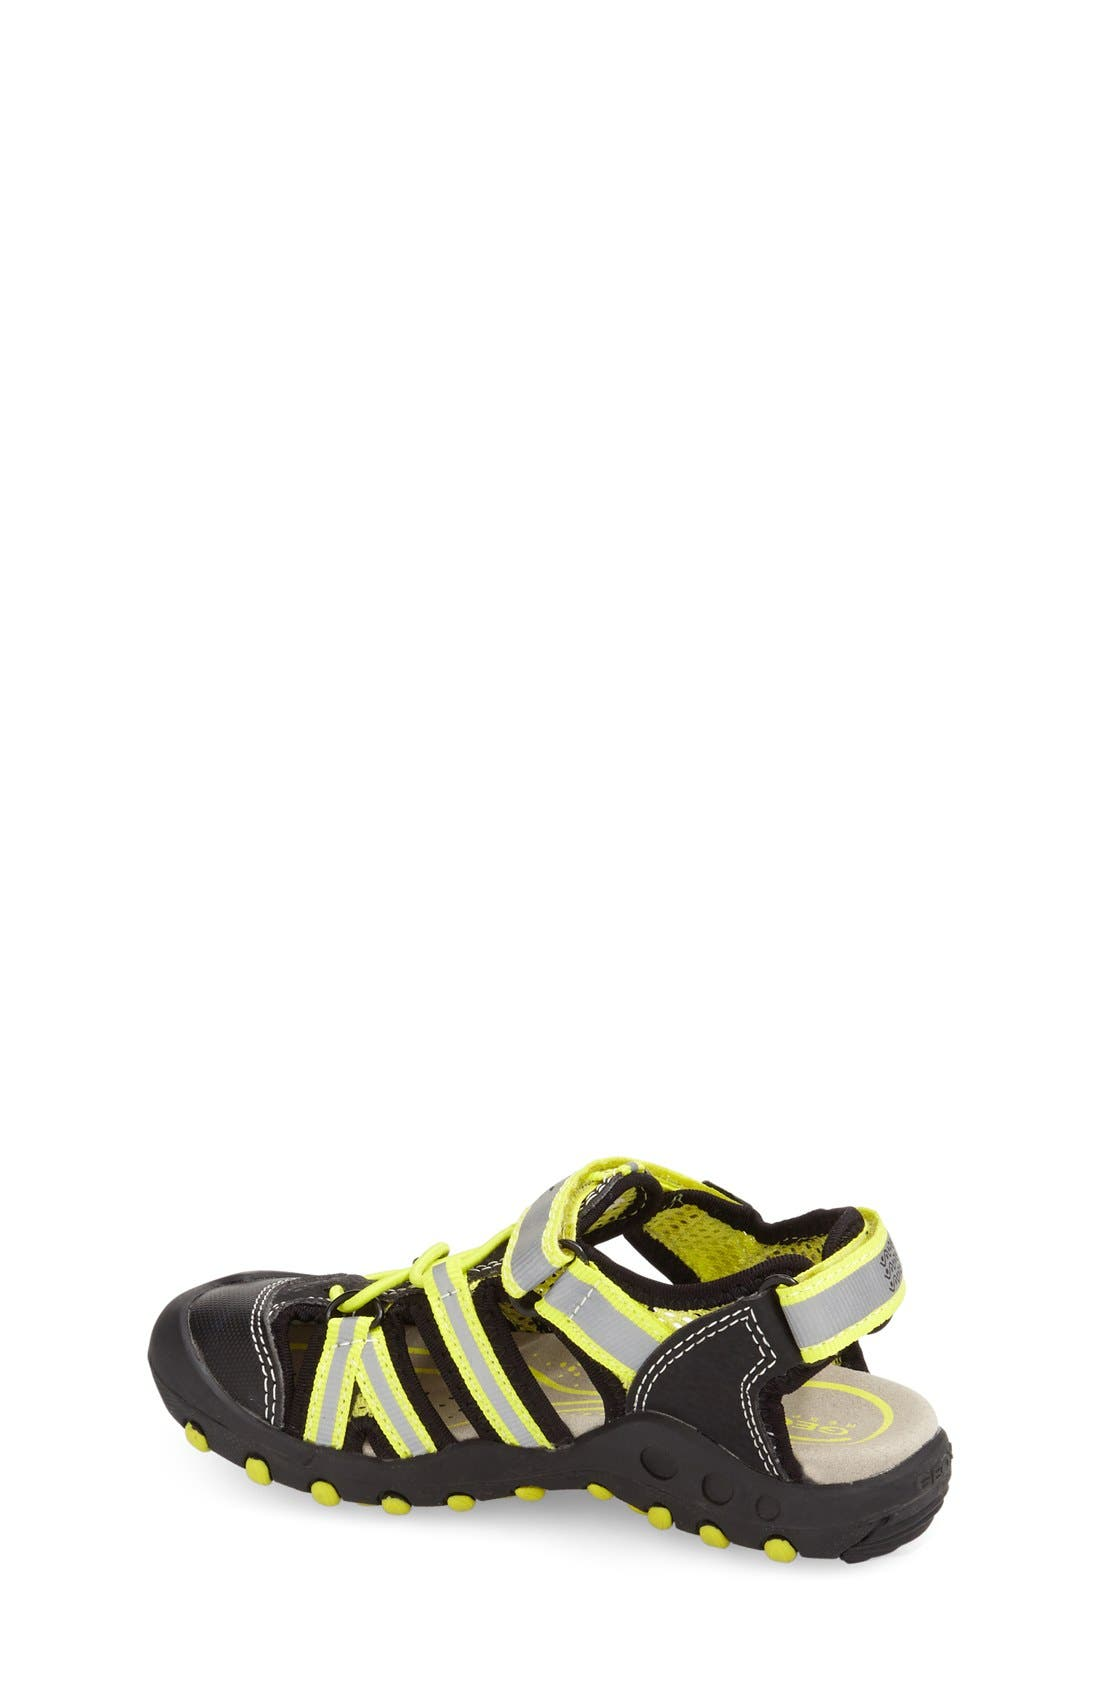 Alternate Image 2  - Geox 'Kyle' Sandal (Toddler, Little Kid & Big Kid)